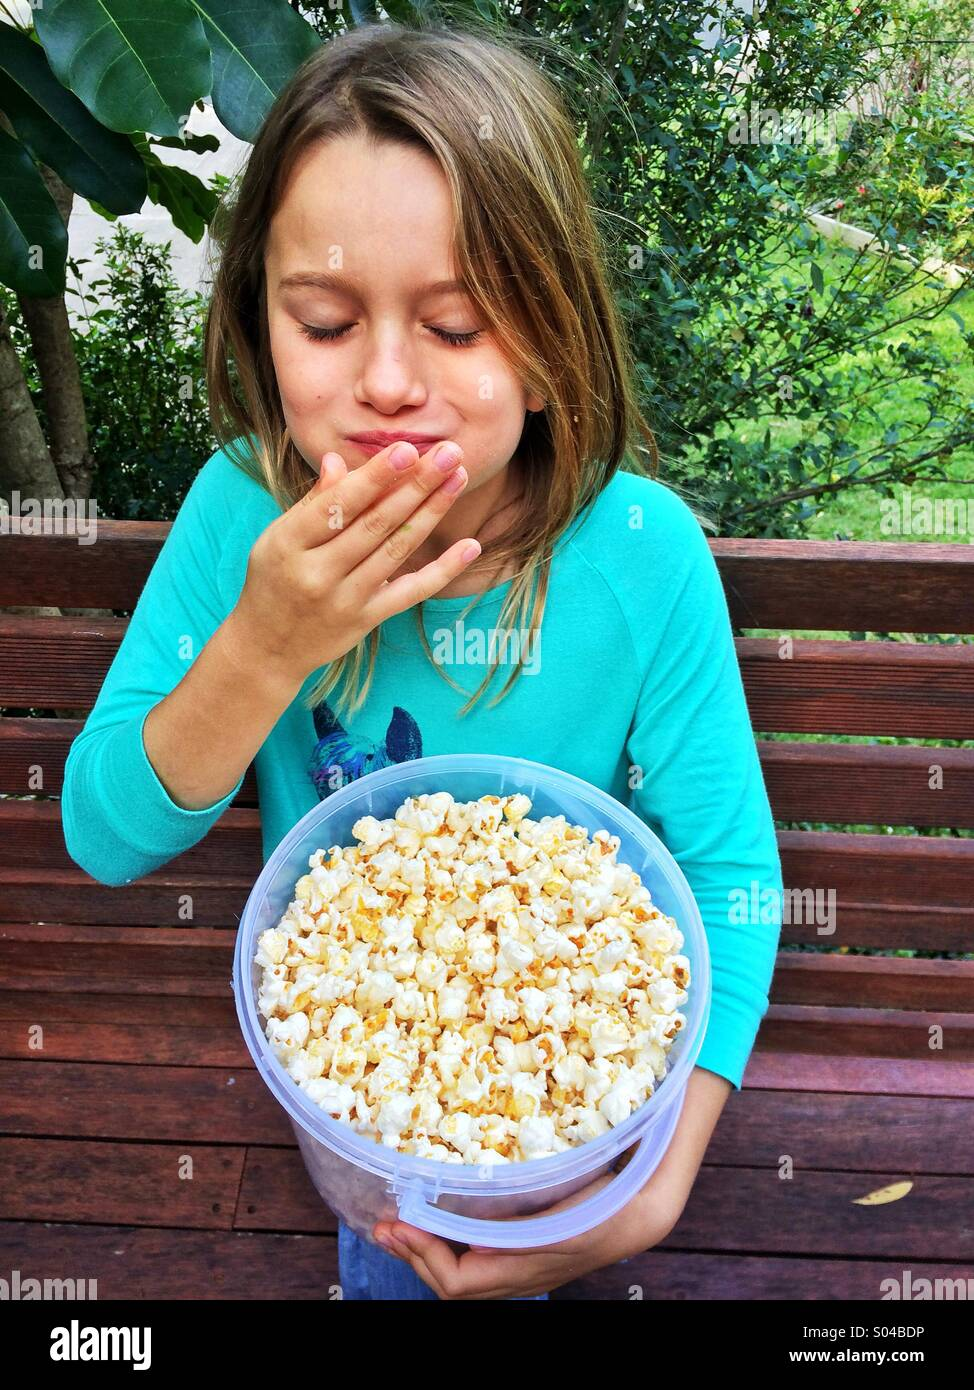 Young girl eating popcorn - Stock Image